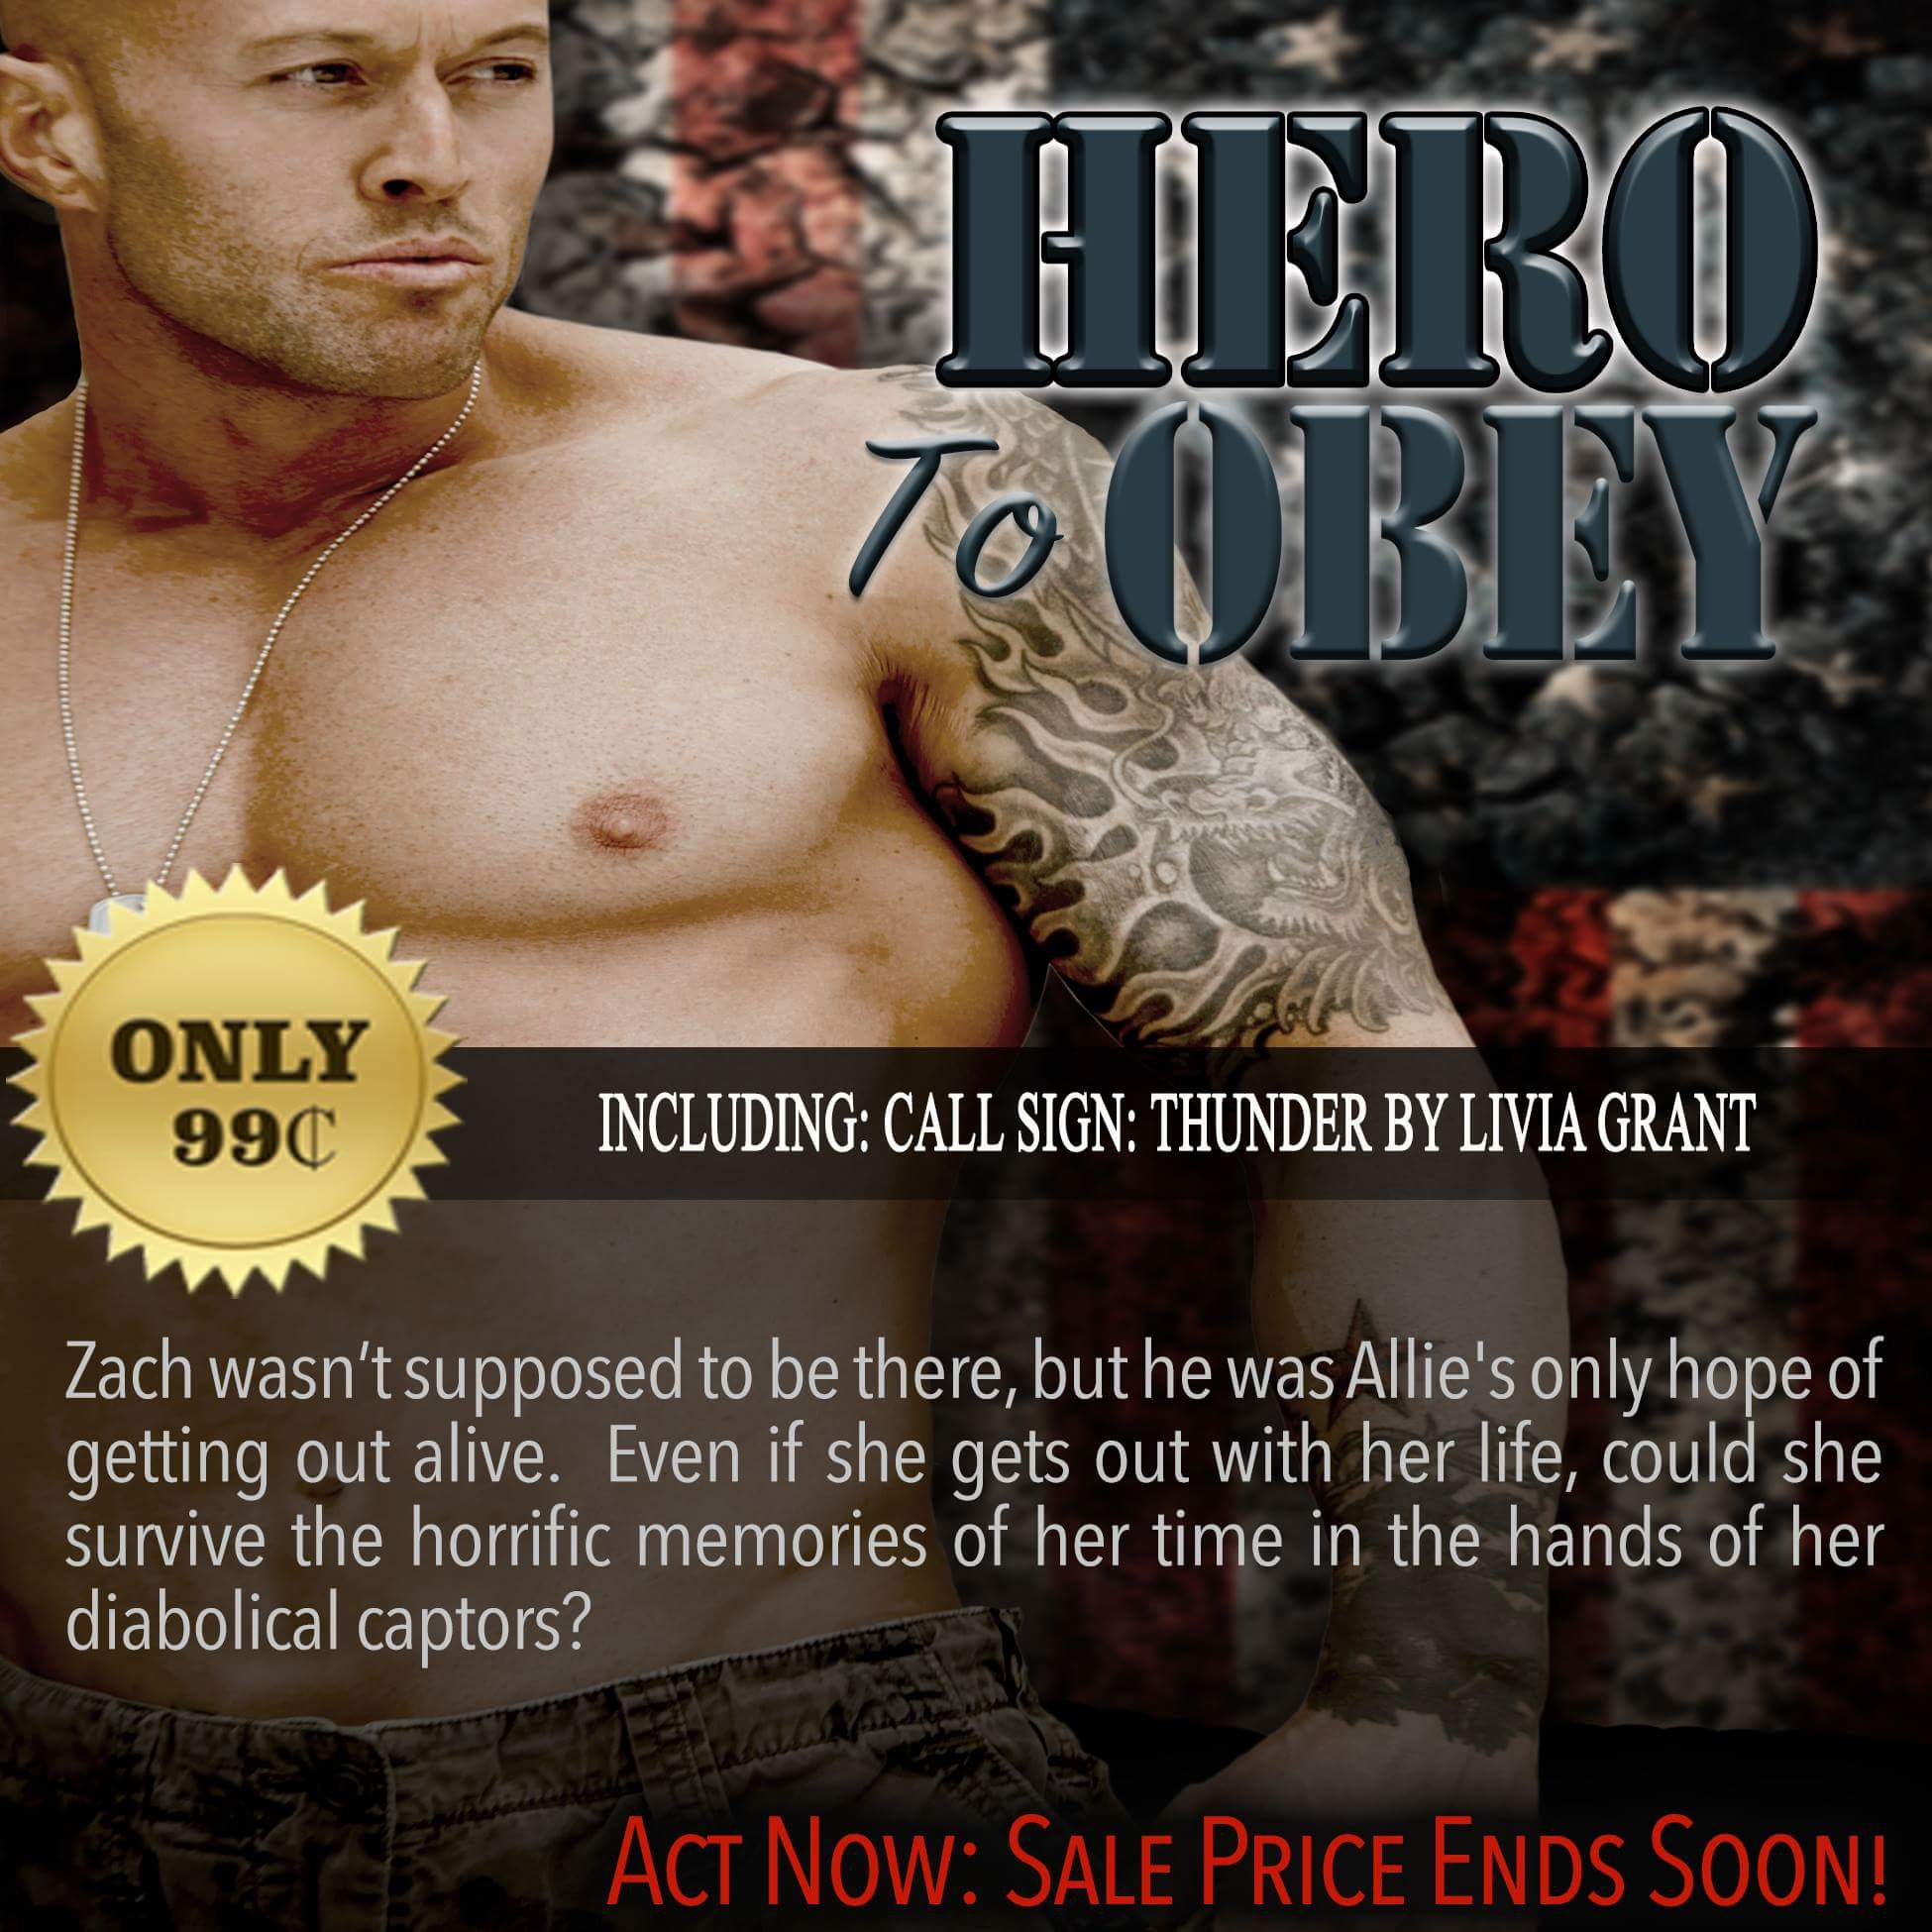 Hero To Obey Book Cover Model Actor John Joseph Quinlan by Livia Grant. #JohnQuinlan #Hero2obey